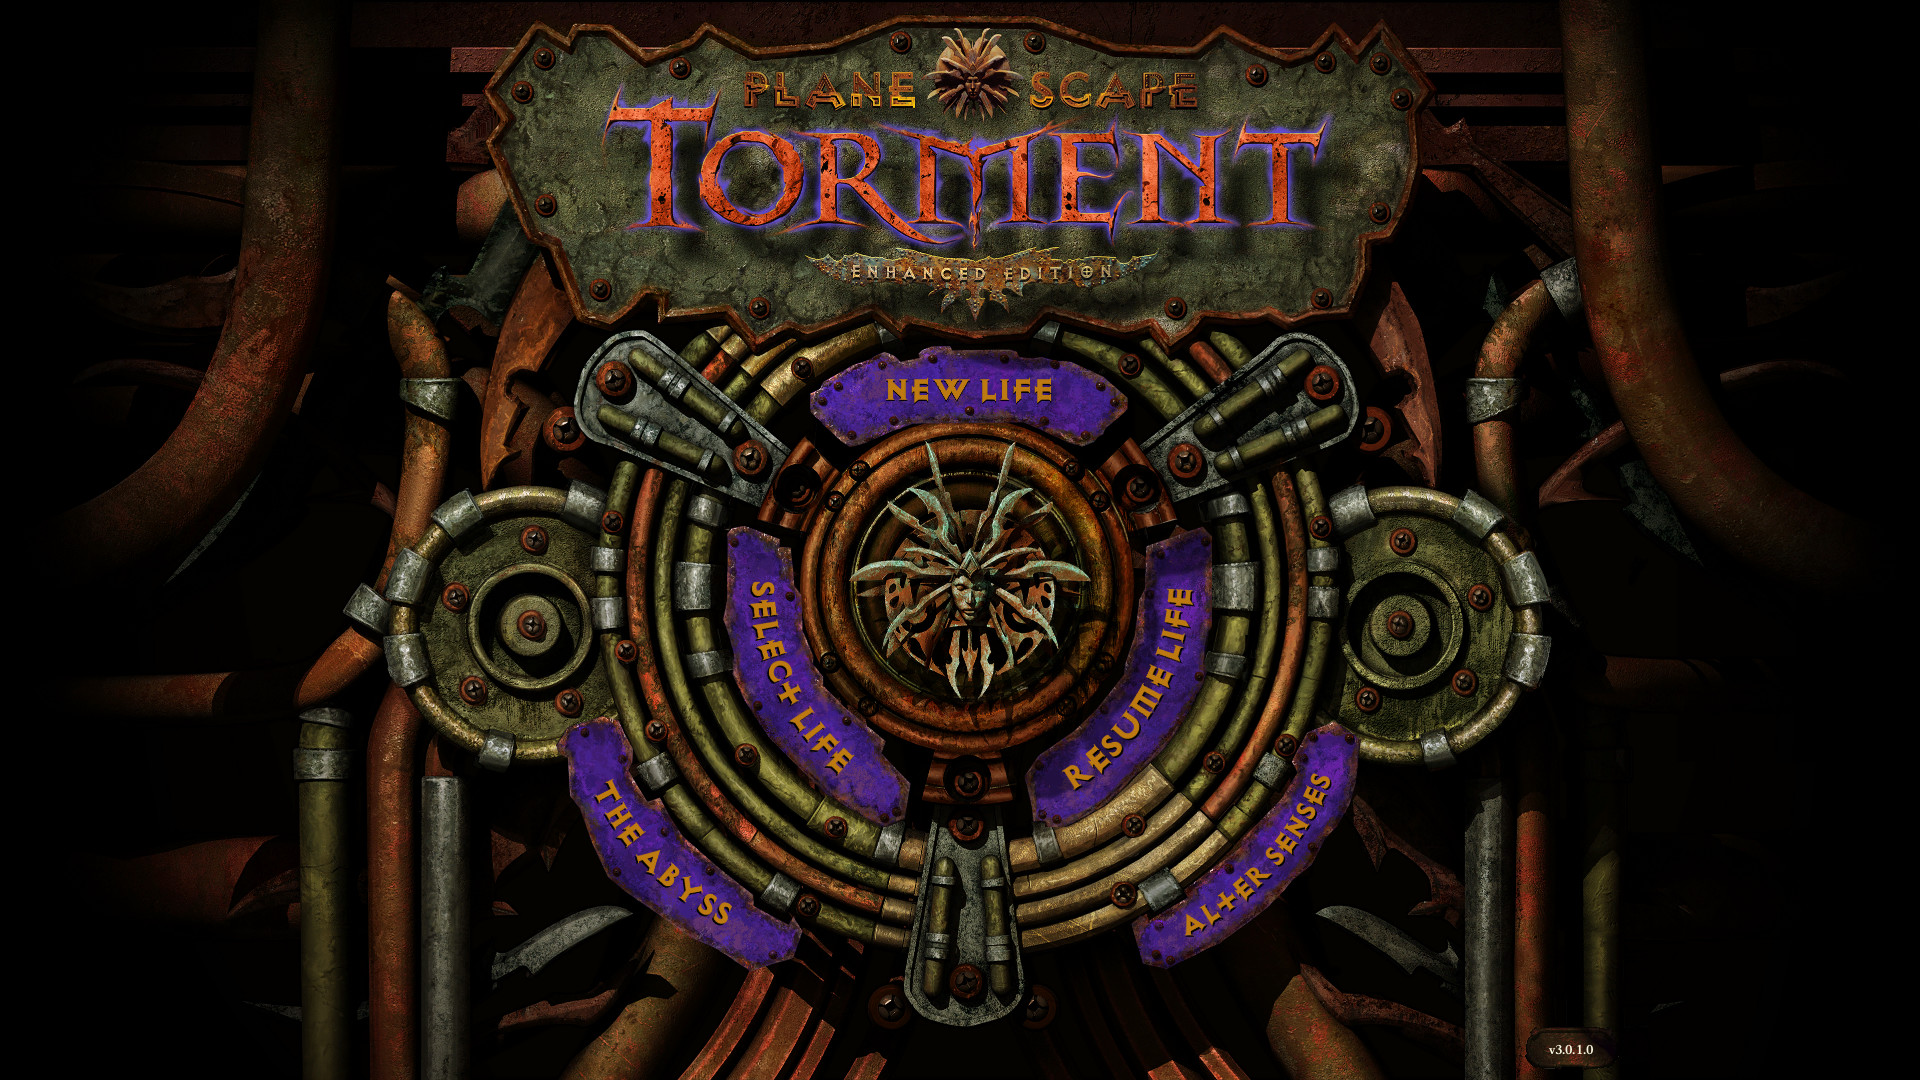 Planescape: Torment turns 20 years old today - here's why it's a classic